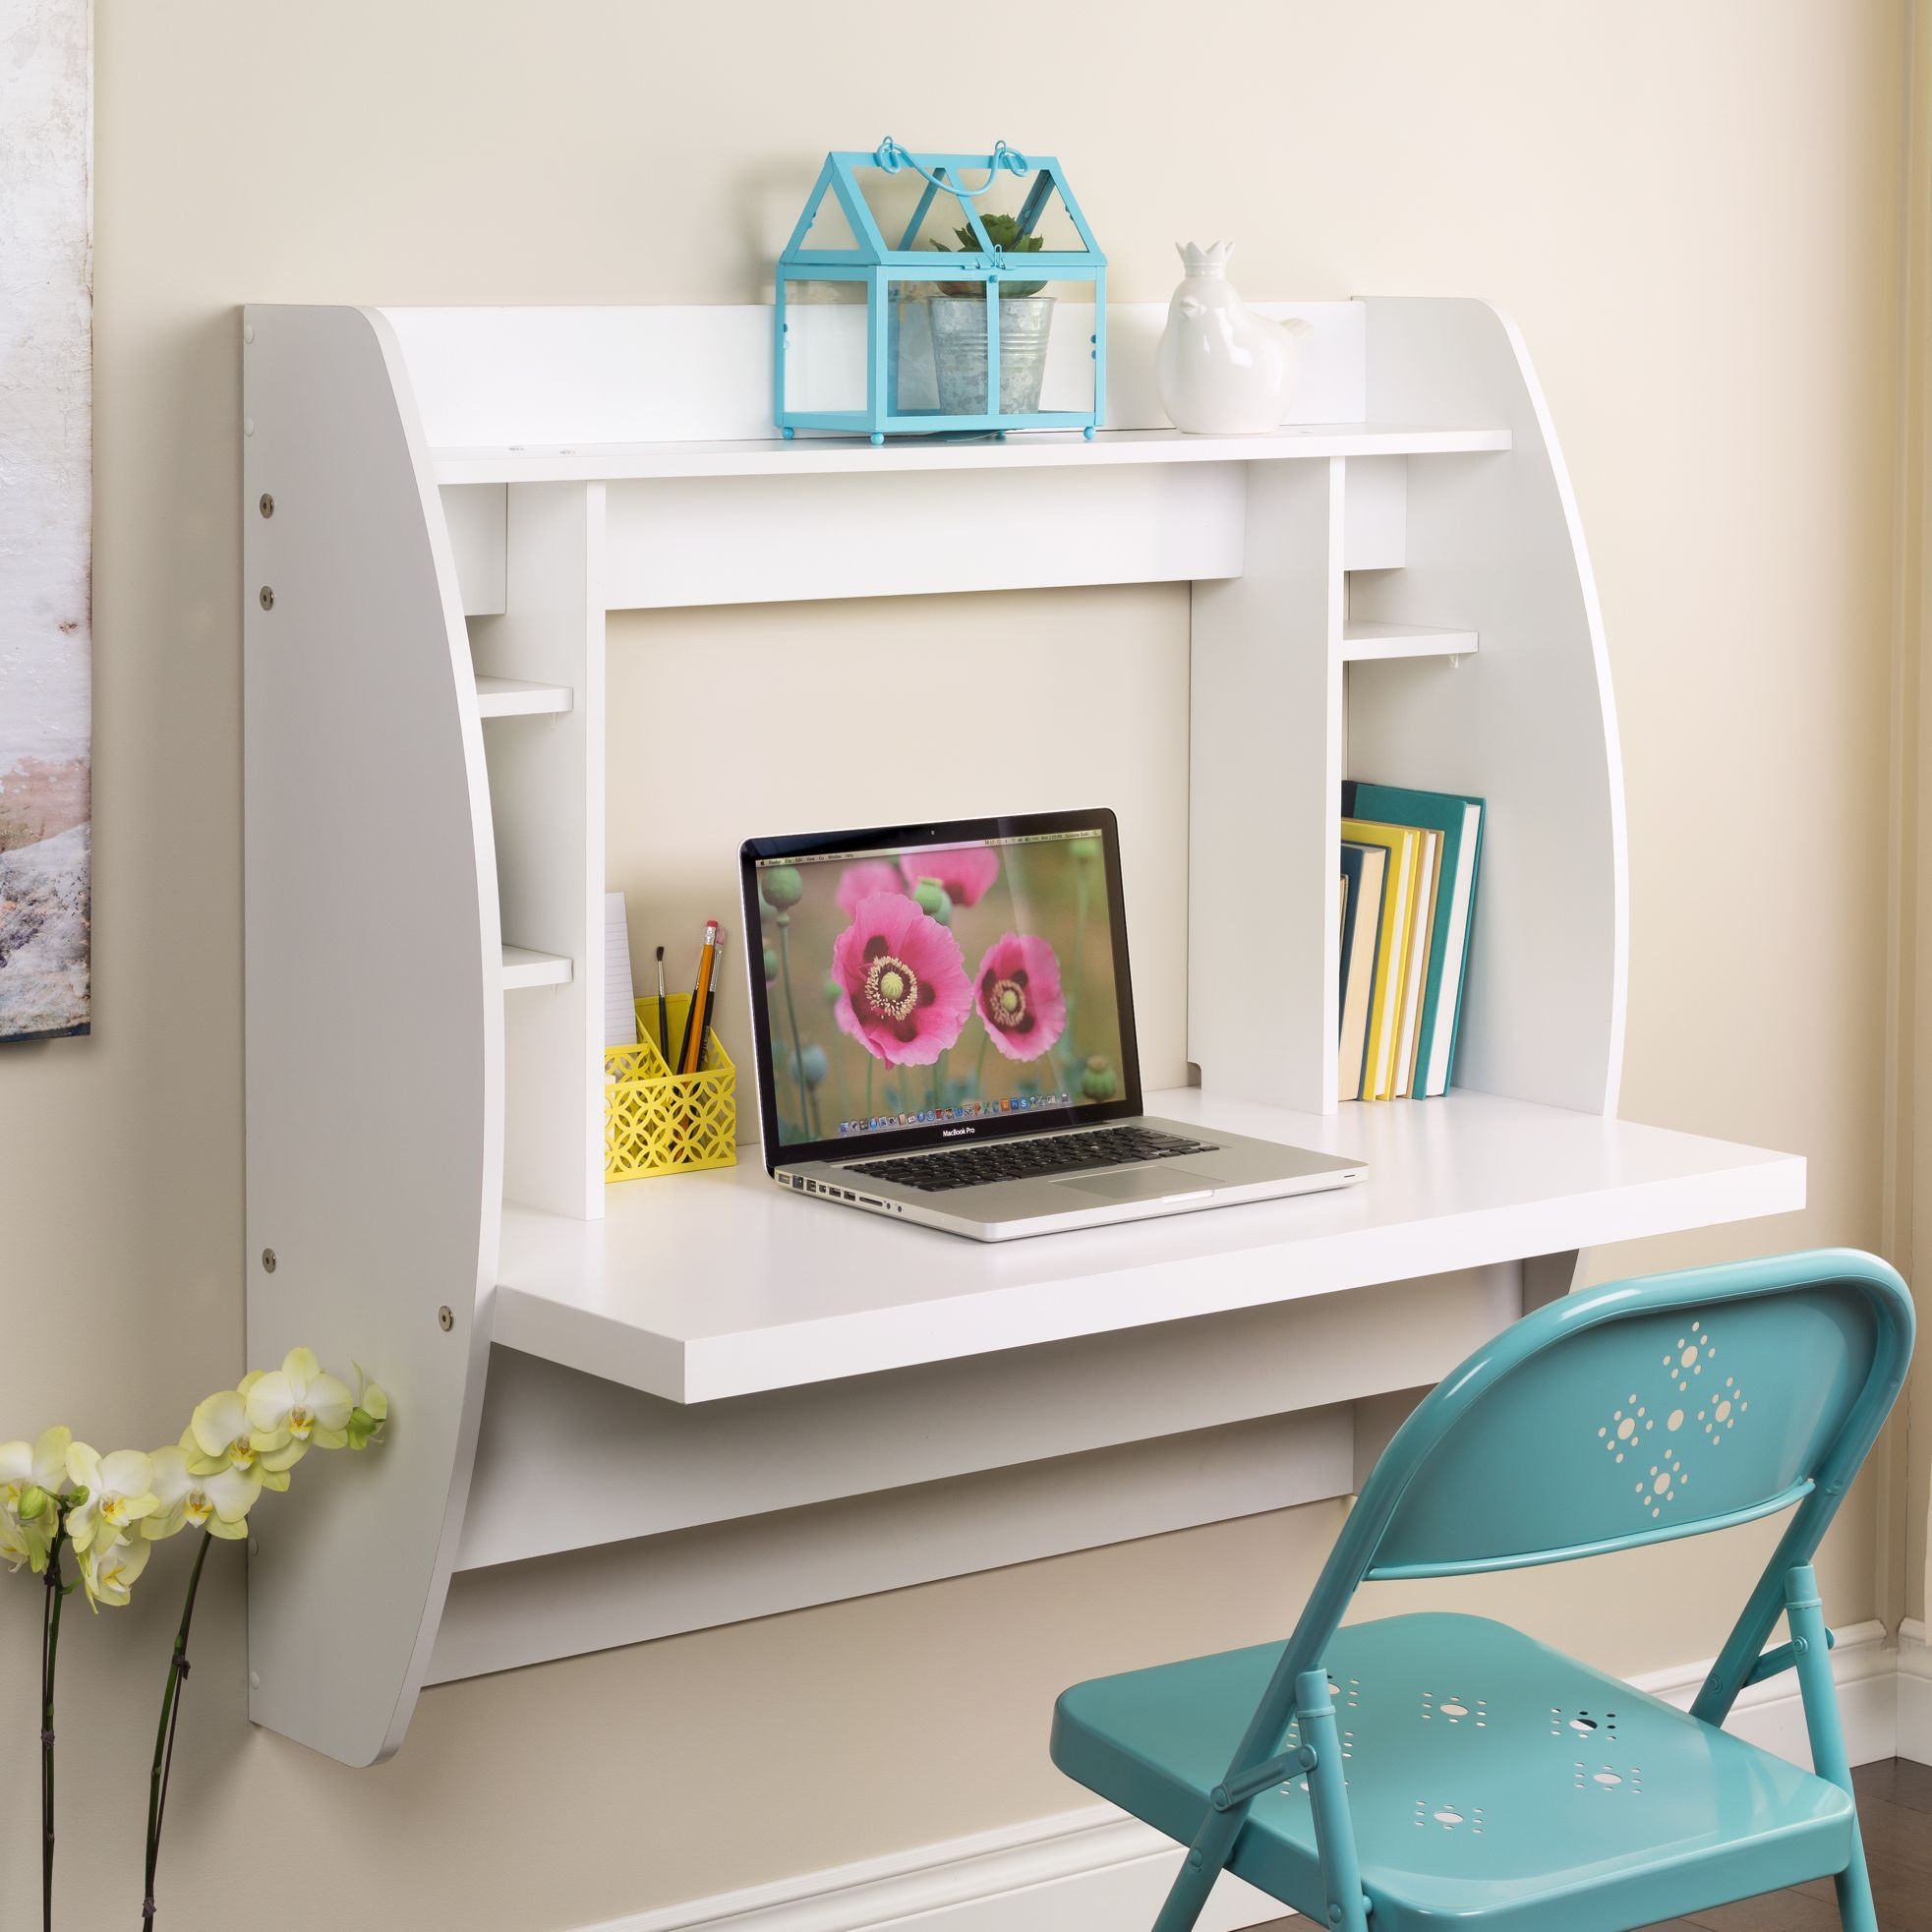 Prepac Floating Writing Desk With Storage White Floating Desk Space Saving Desk Desks For Small Spaces